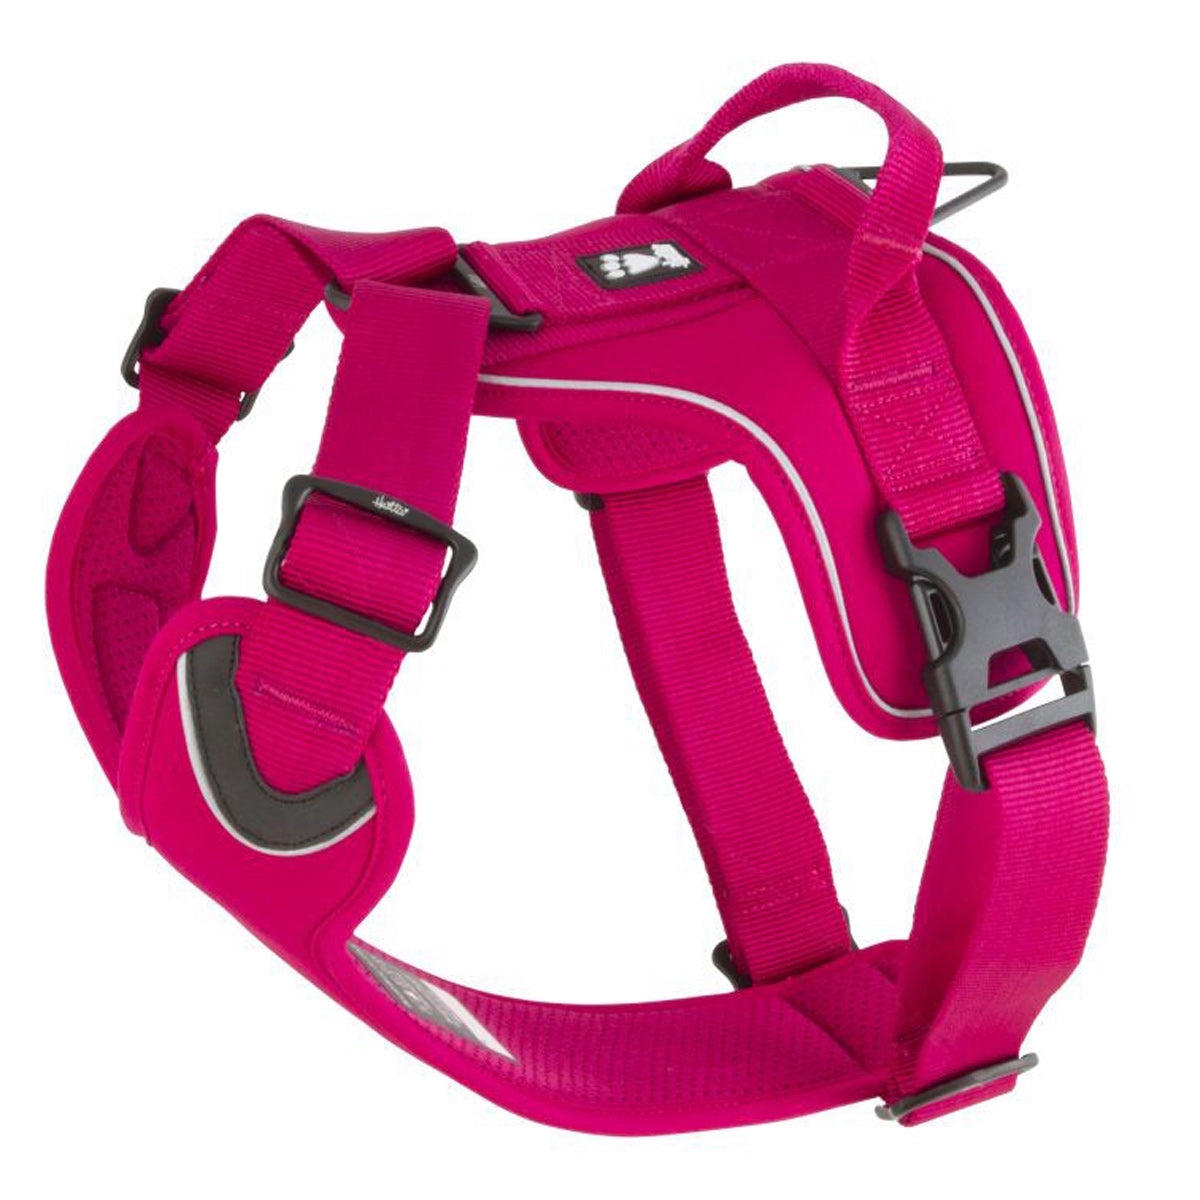 Weekend Warrior Harness - Cherry